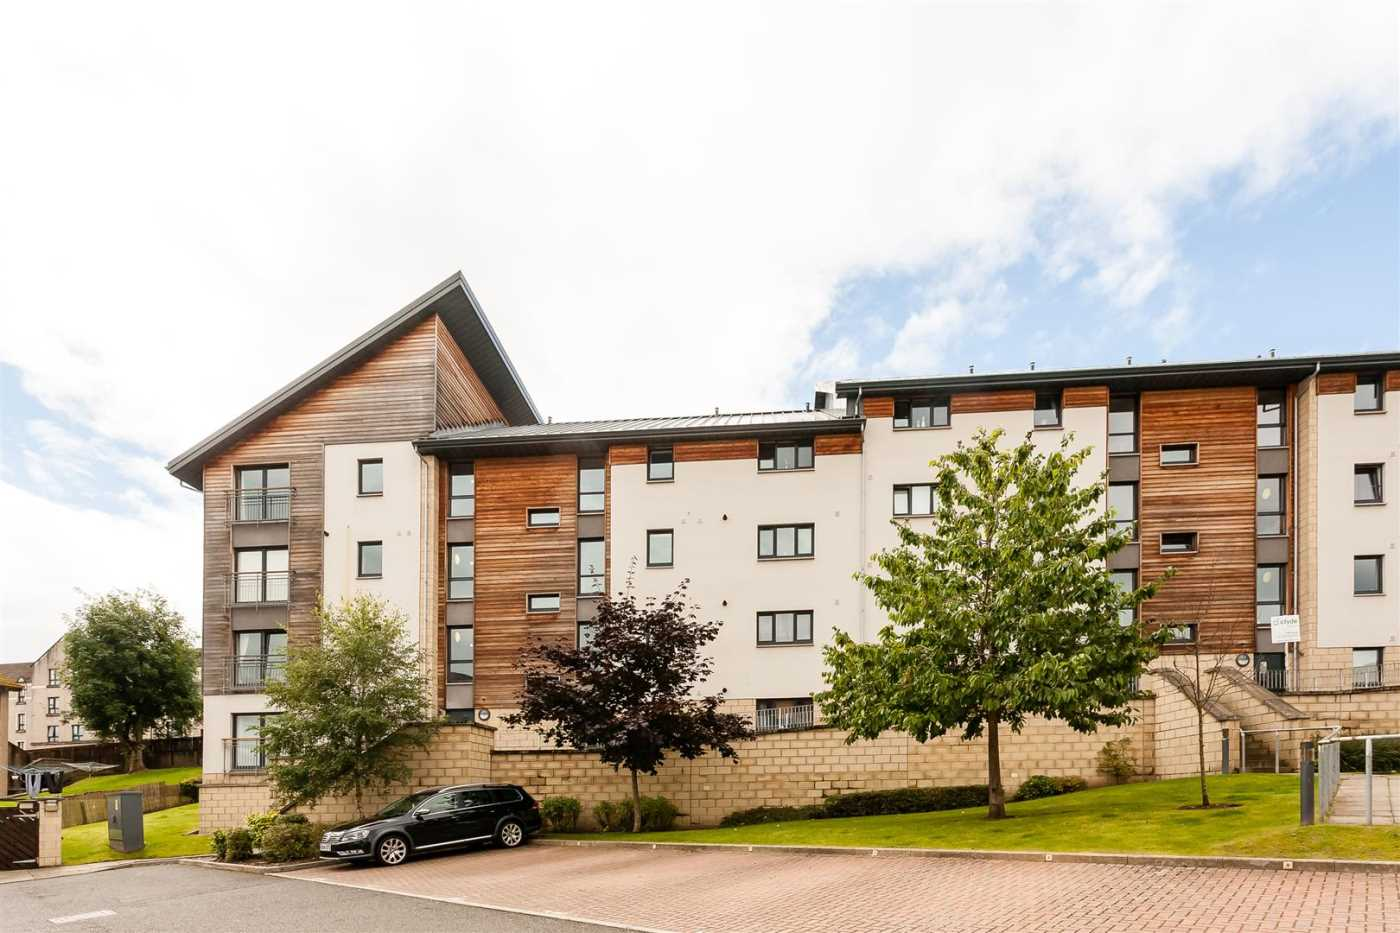 This beautiful two bedroom ground floor flat is within a modern development of similar properties and offers a spacious level of accommodation comprising: a bright lounge, kitchen, two double bedrooms with master bedroom with ensuite and a modern bathroom